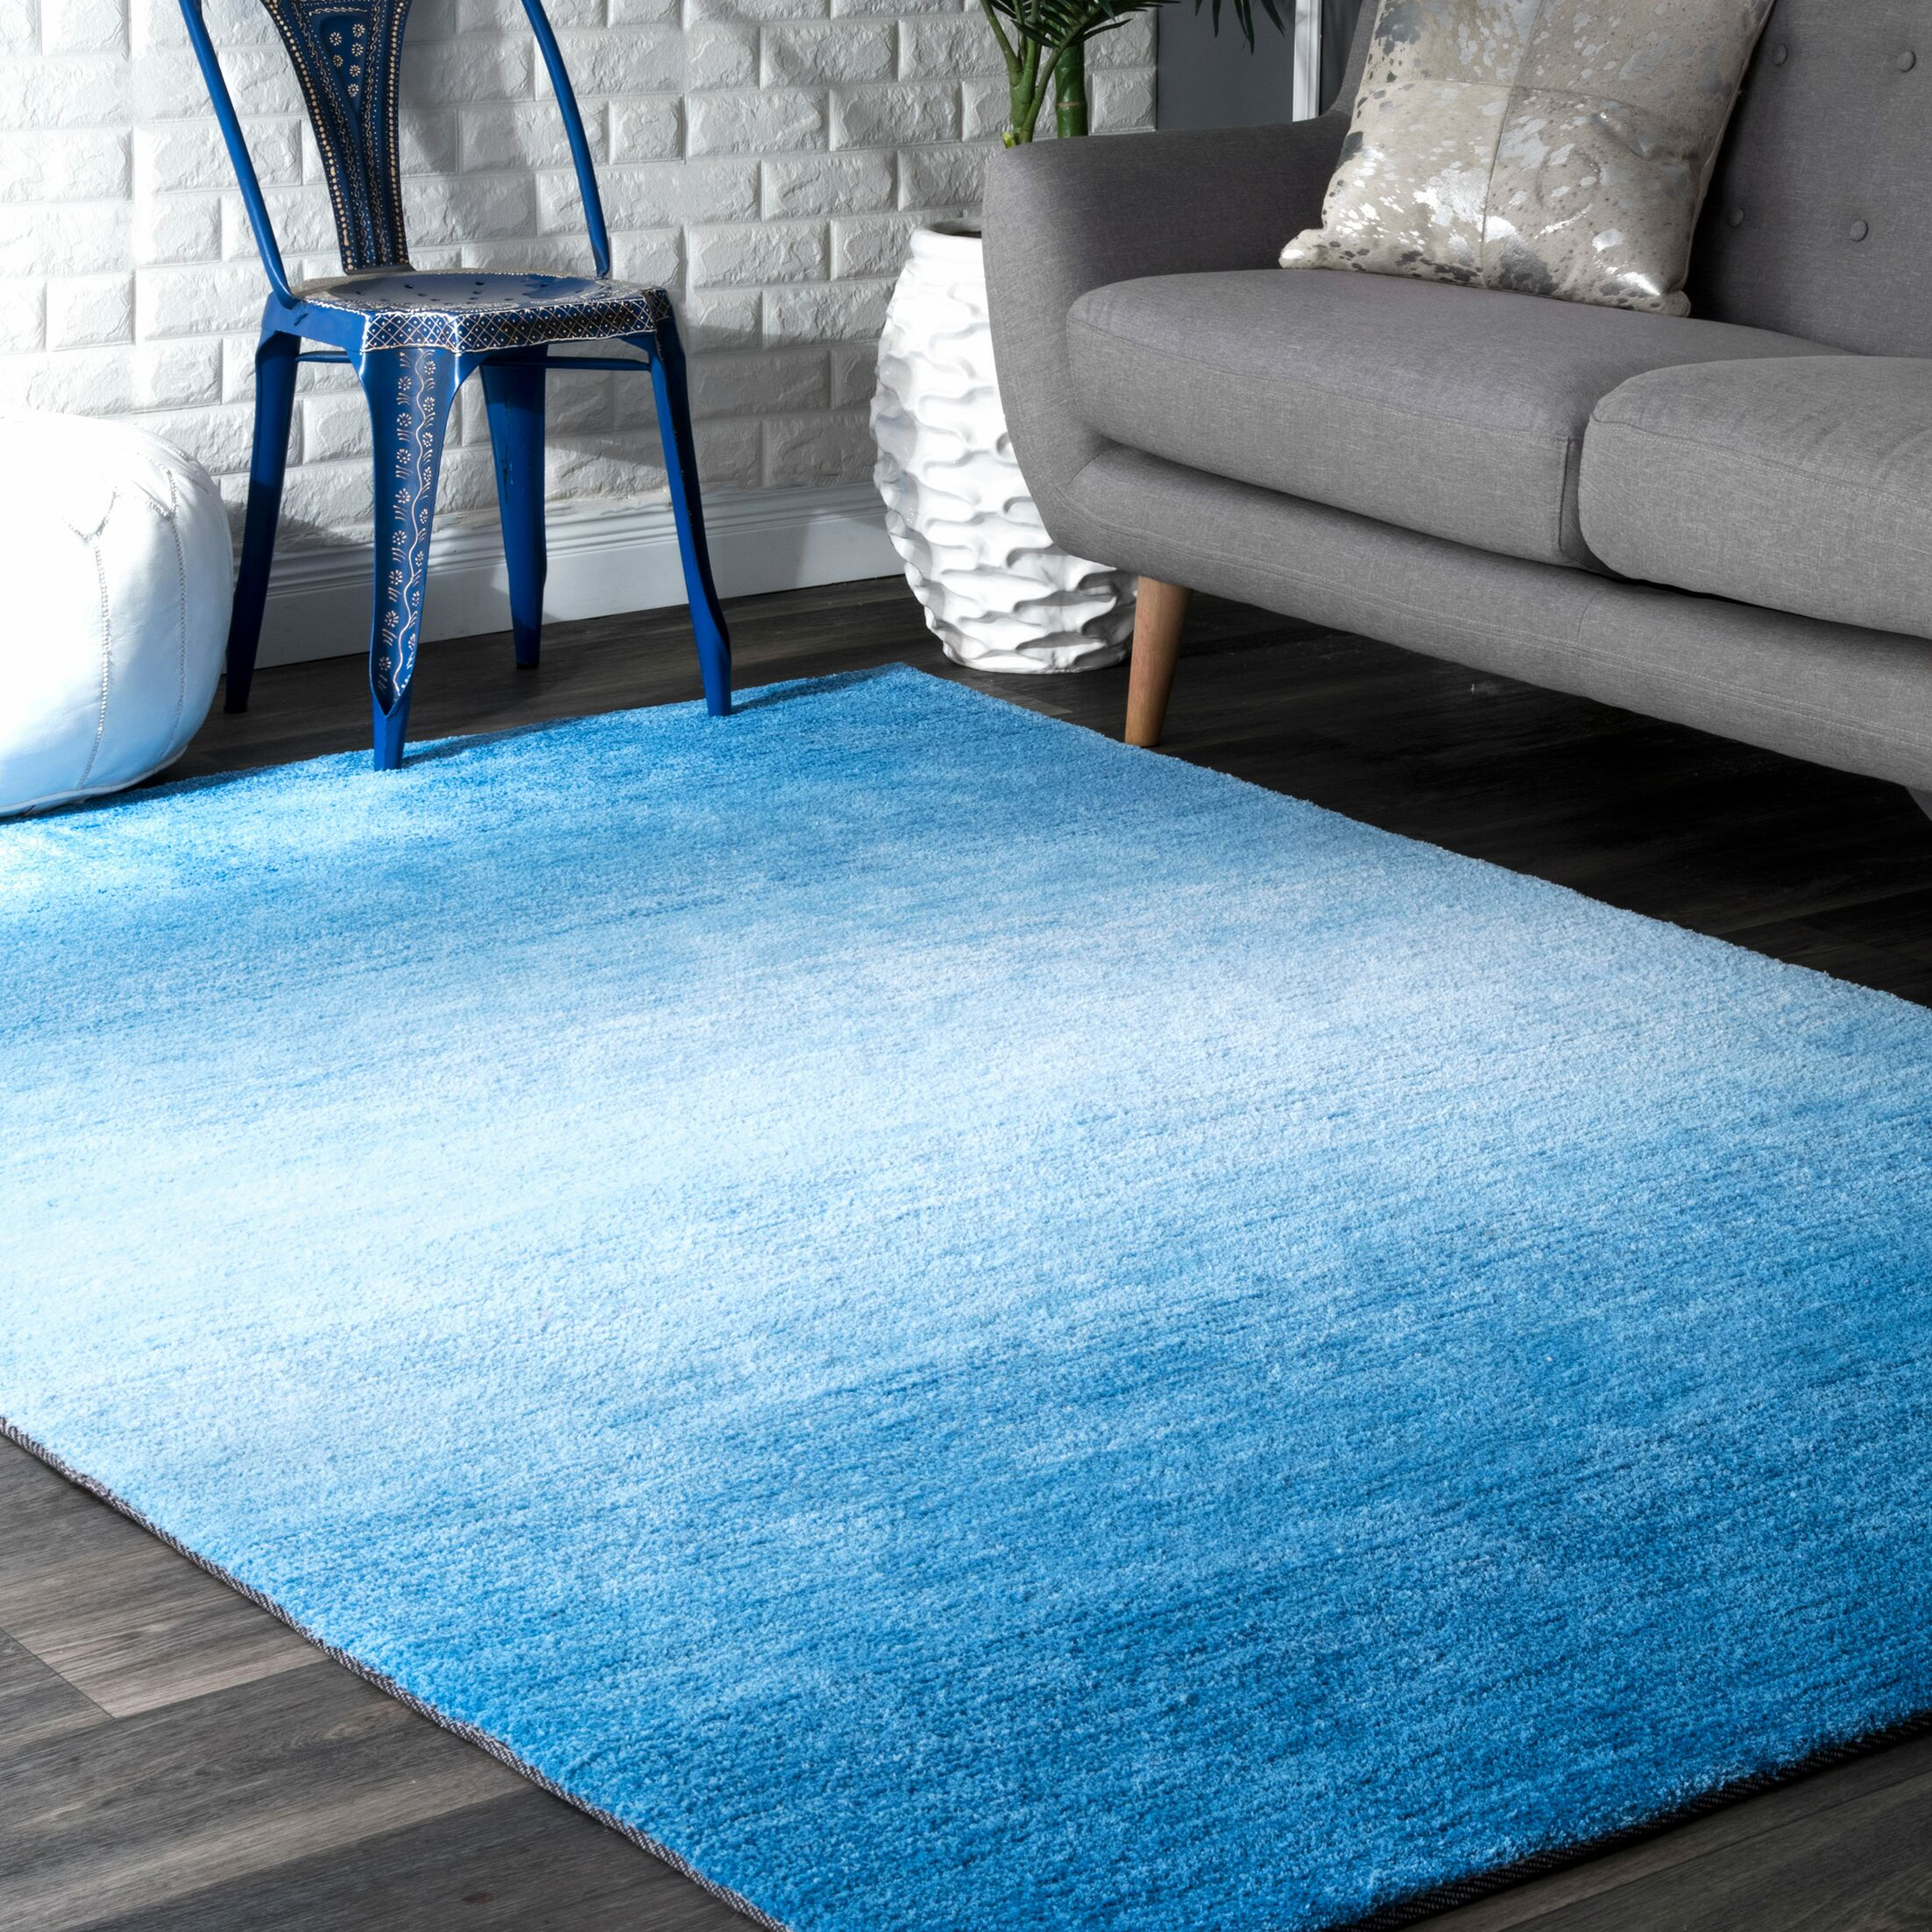 Lochlan Hand-Tufted Area Rug Rug Size: Rectangle 4' x 6'